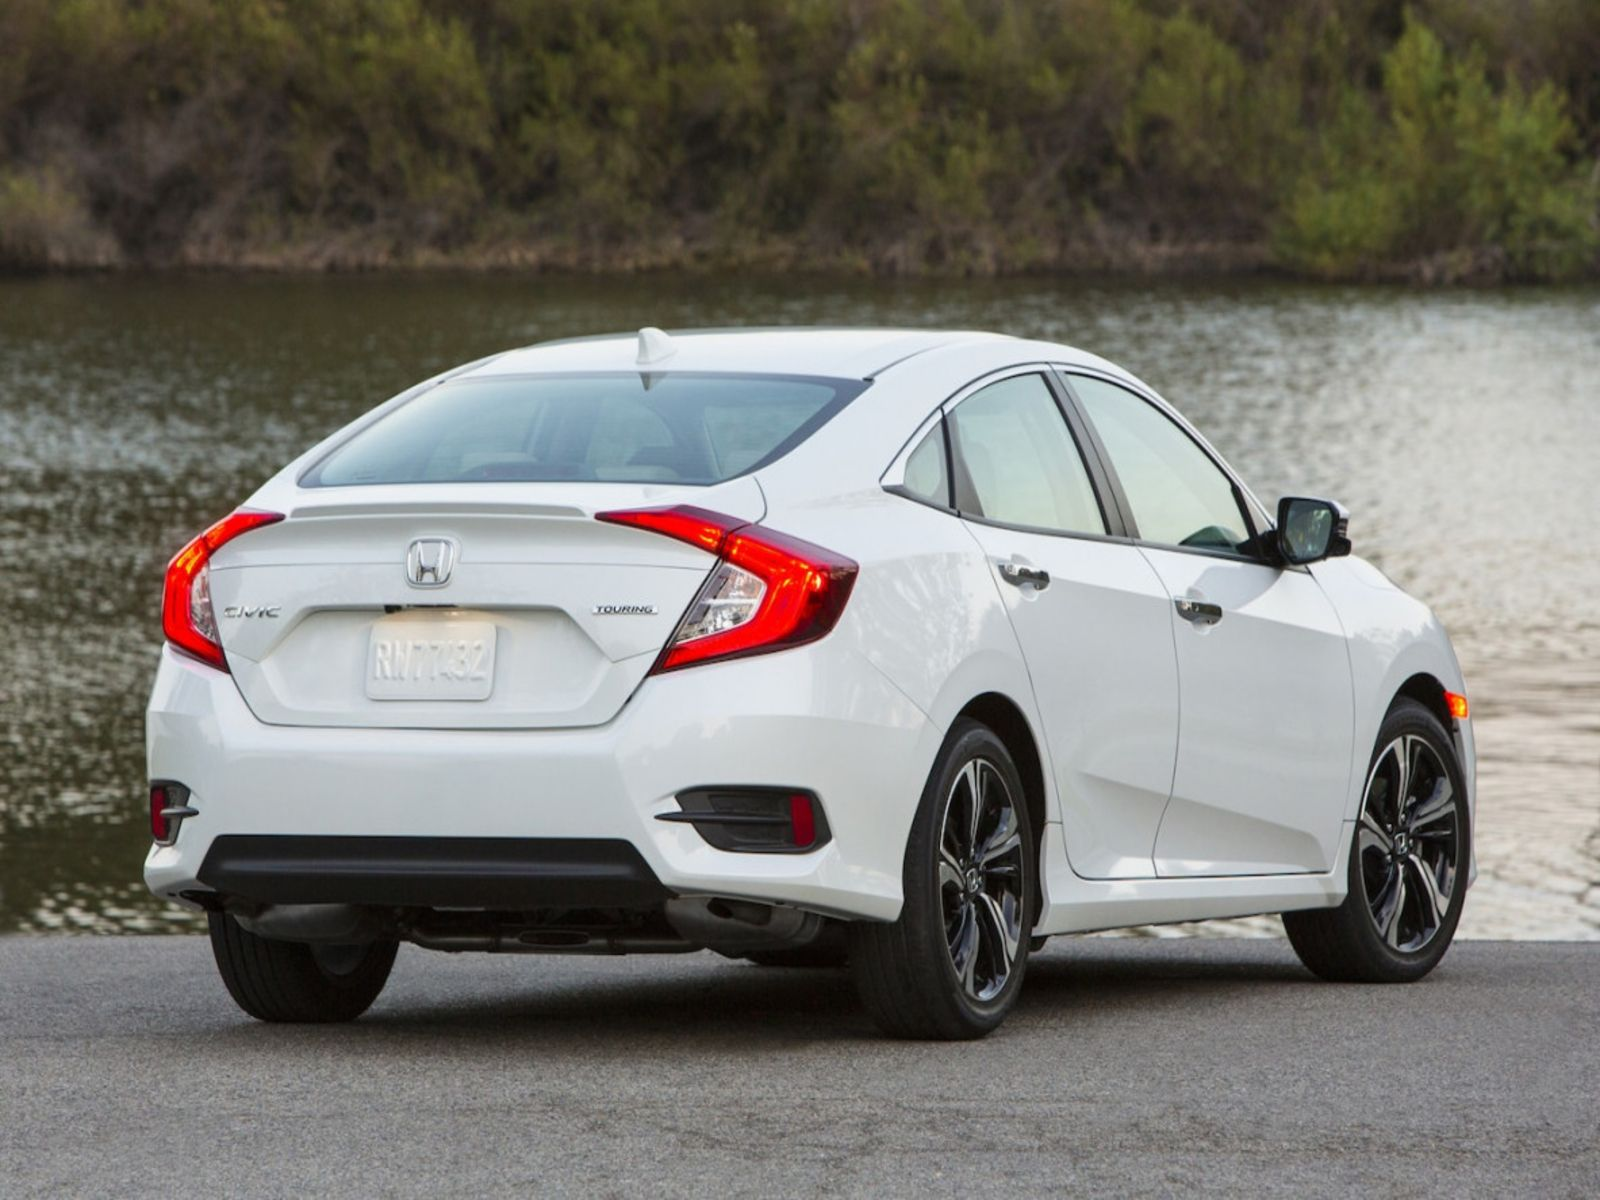 2016 Honda Civic Touring Pricing Check more at https//www